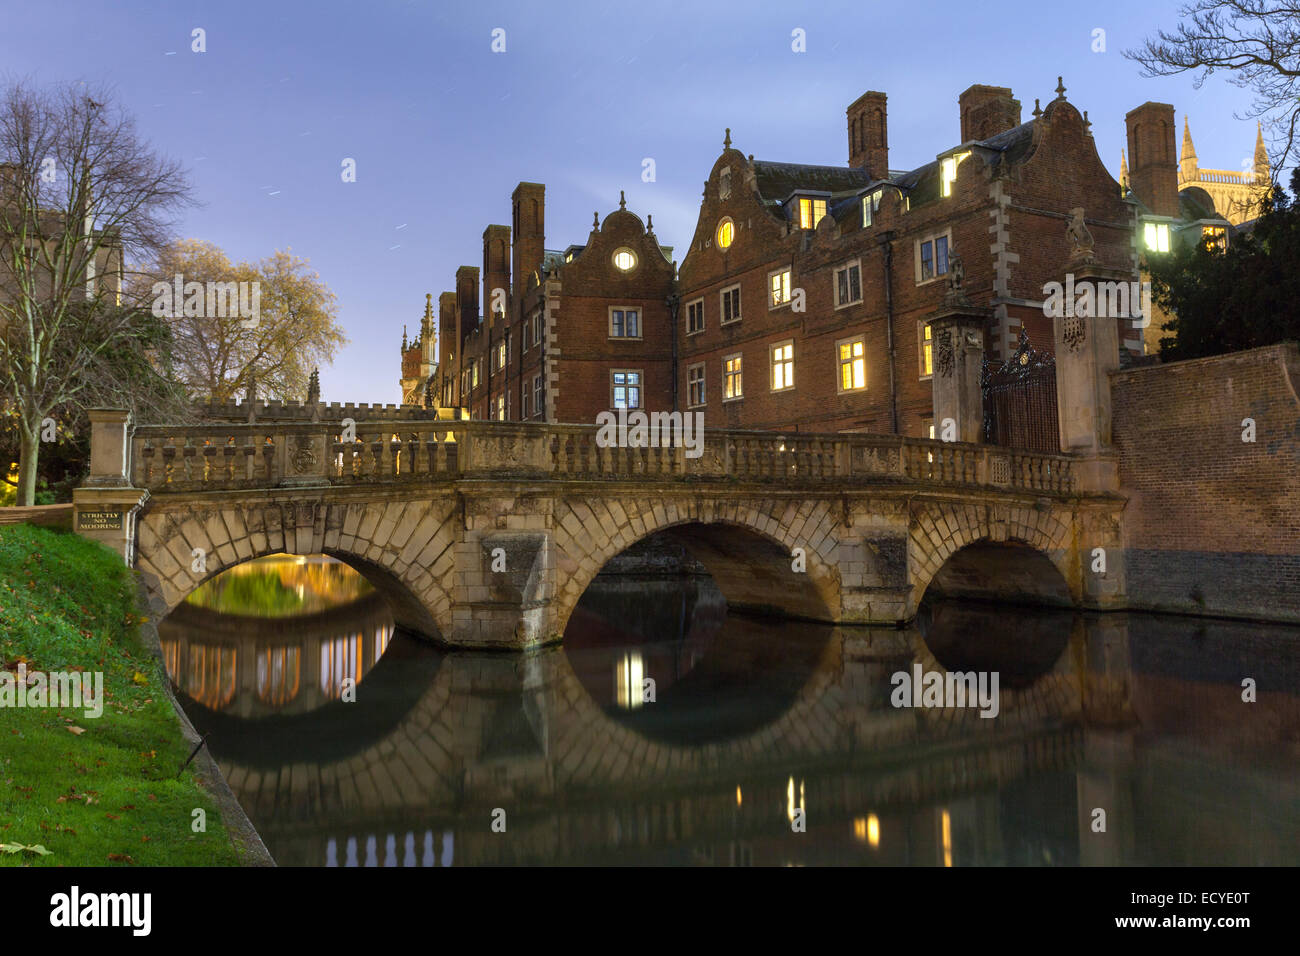 Neptune Bridge St Johns College, Cambridge University at night - Stock Image